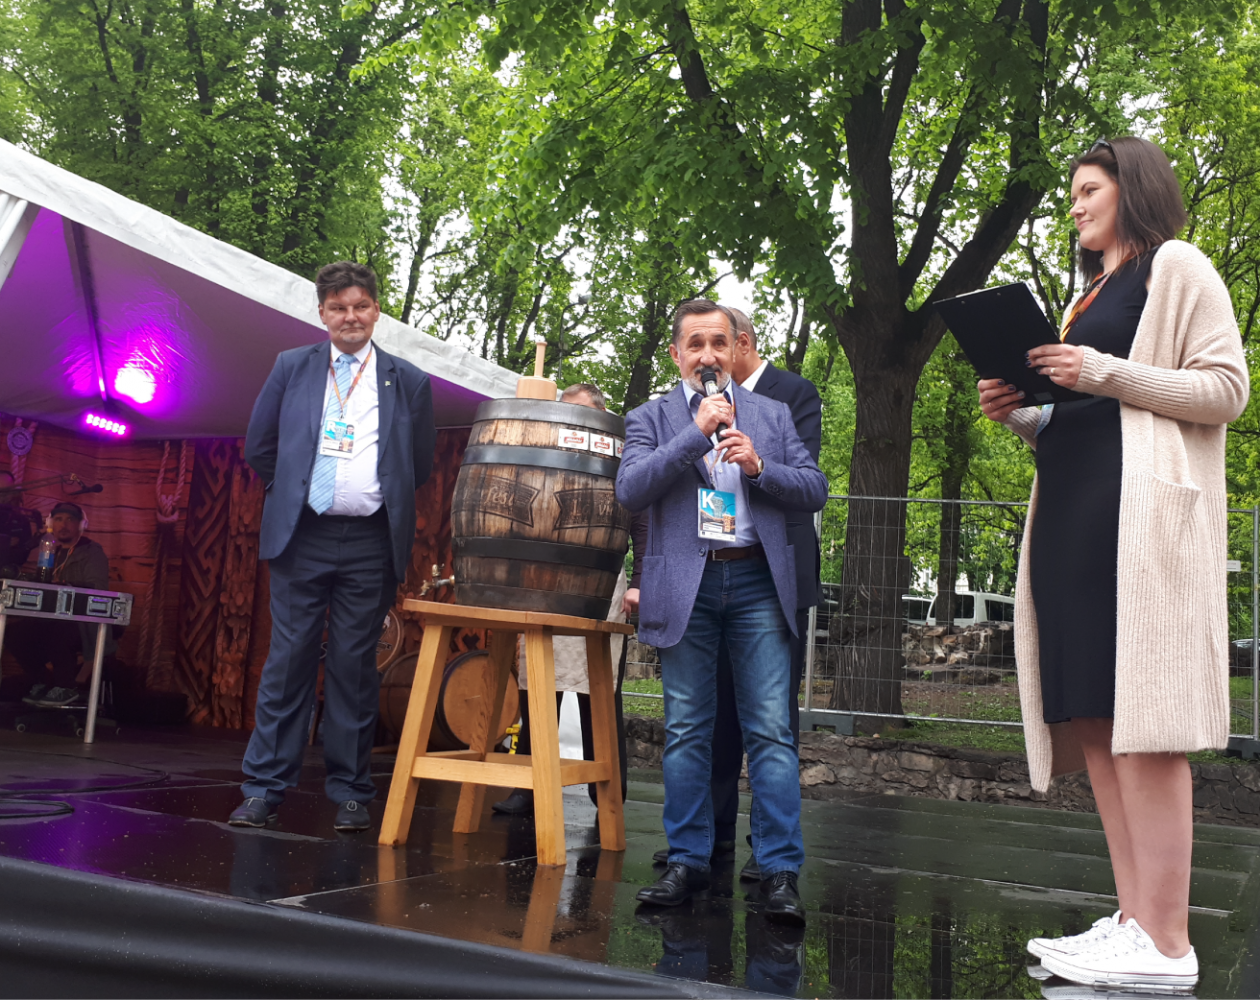 Bauska brewery has been participating in Latviabeerfest for seven consecutive years